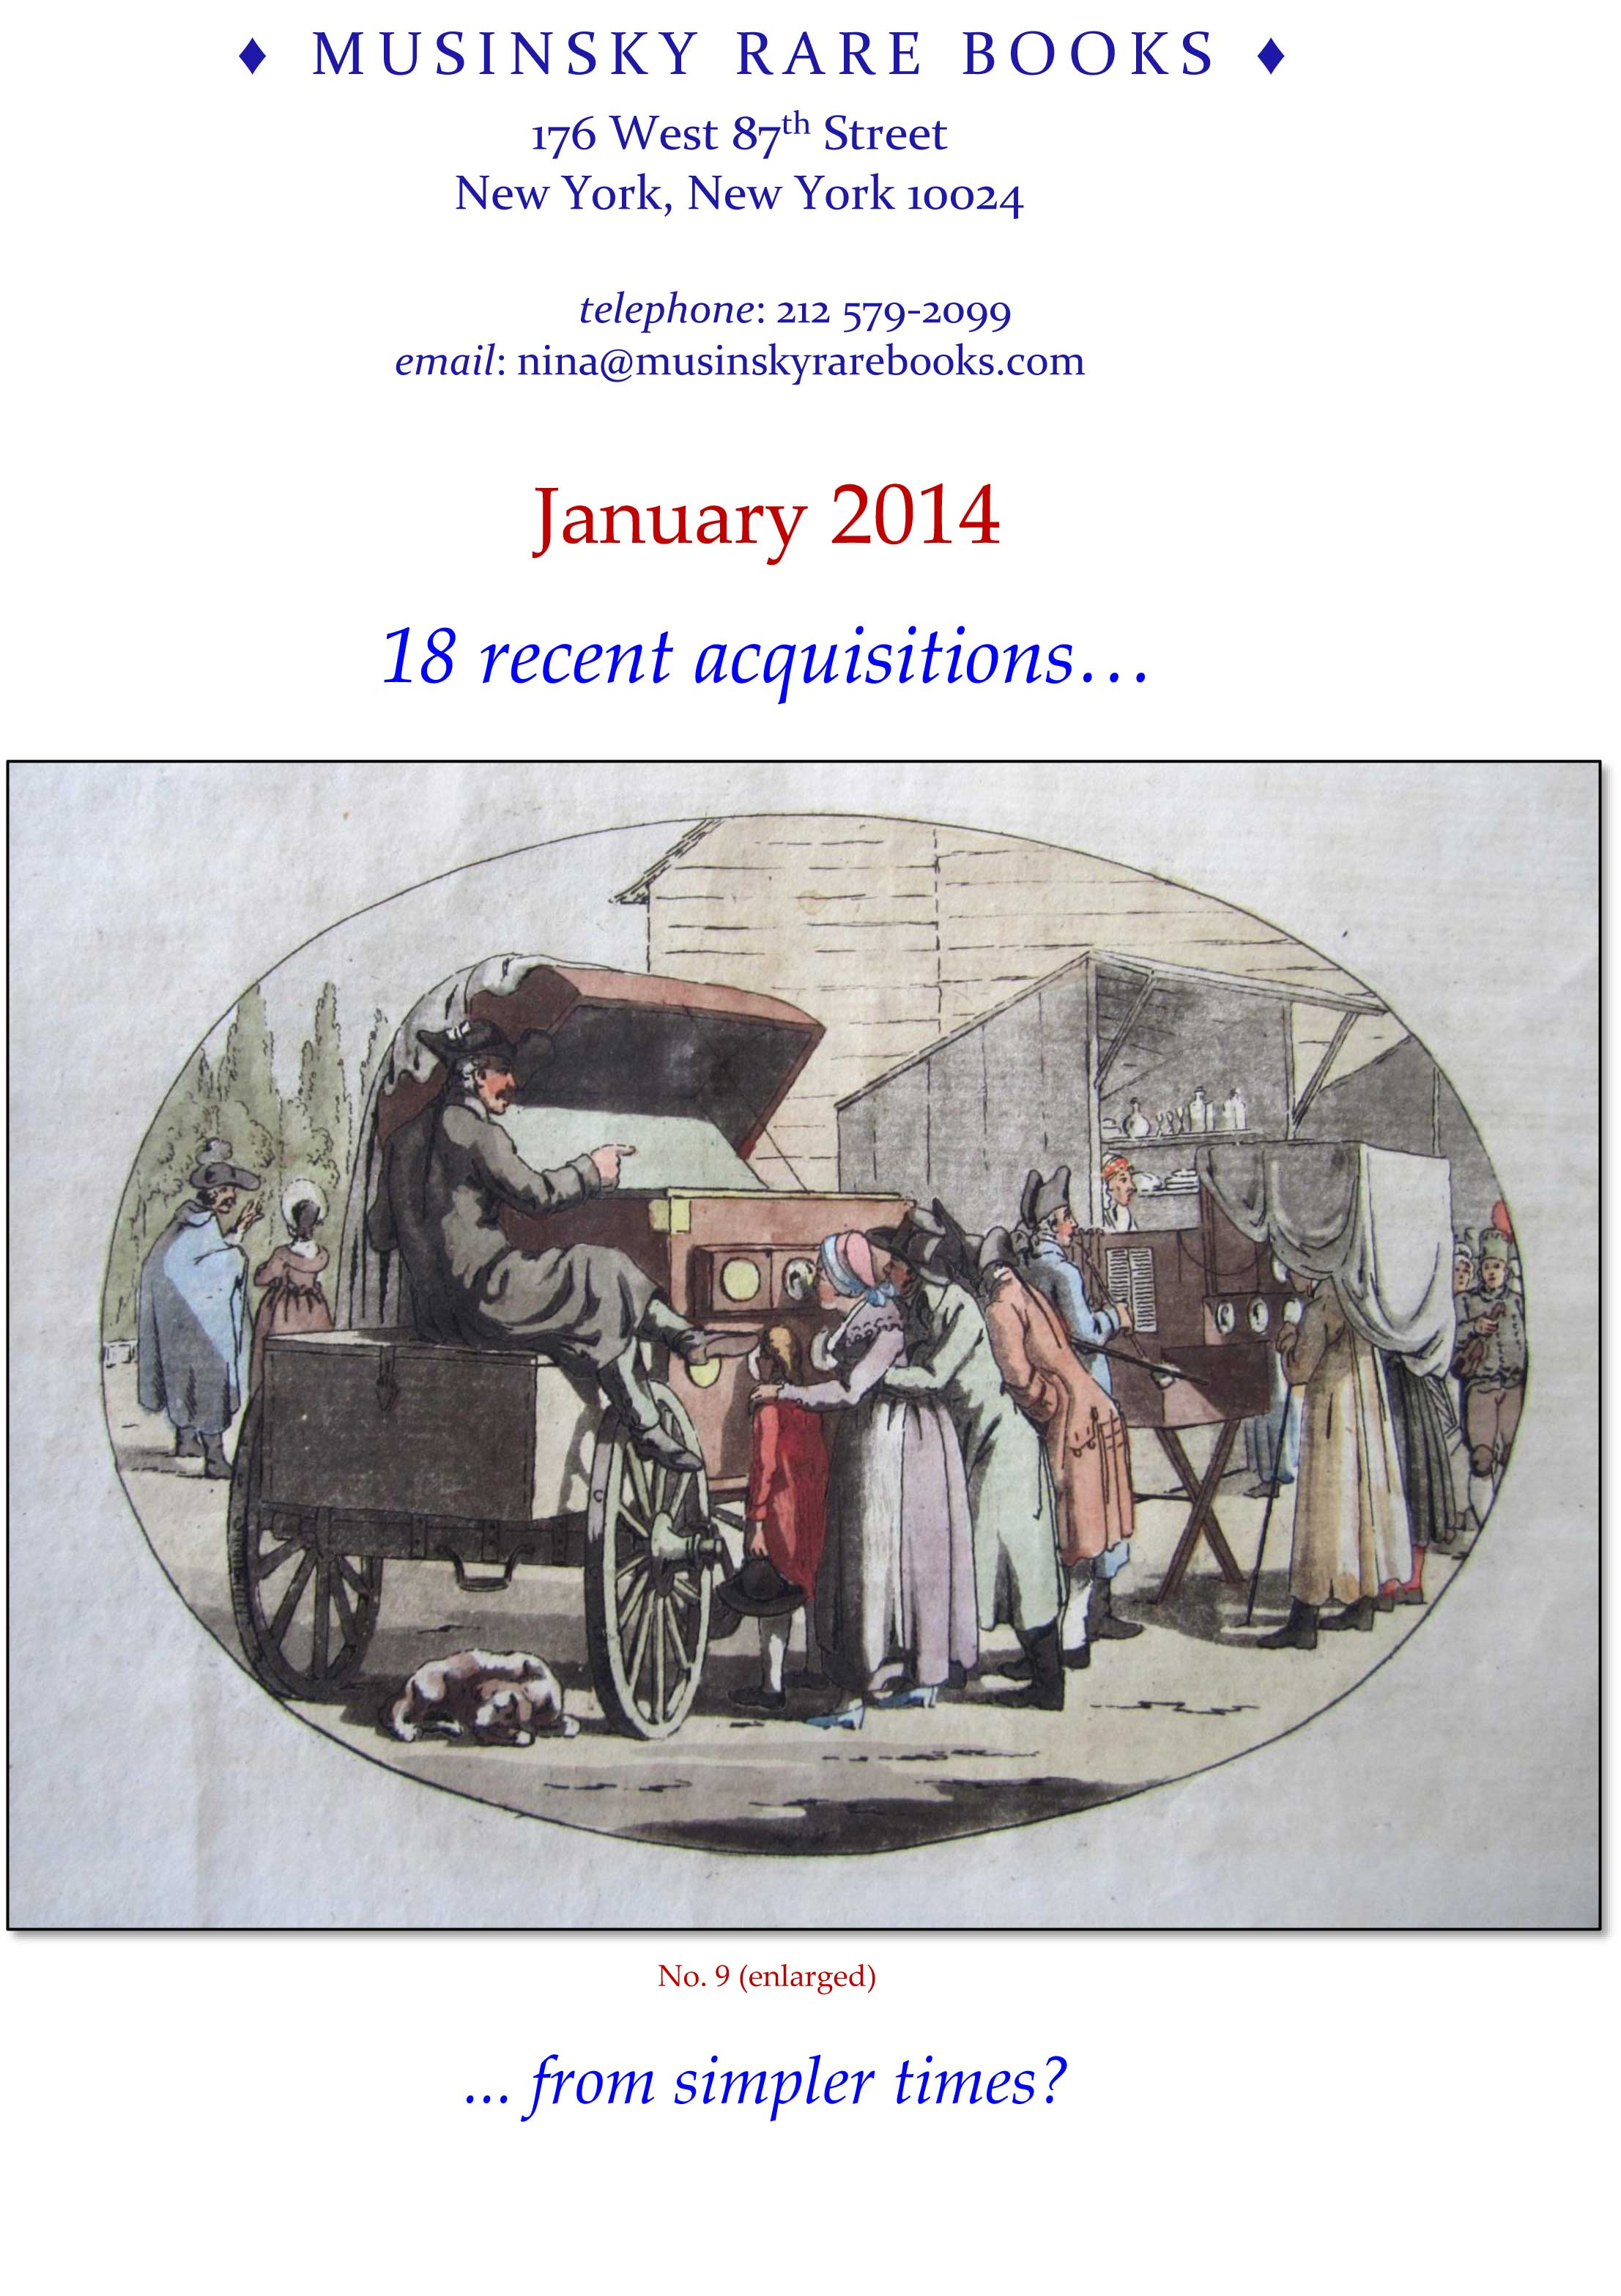 January 2014 - 18 recent acquisitions…